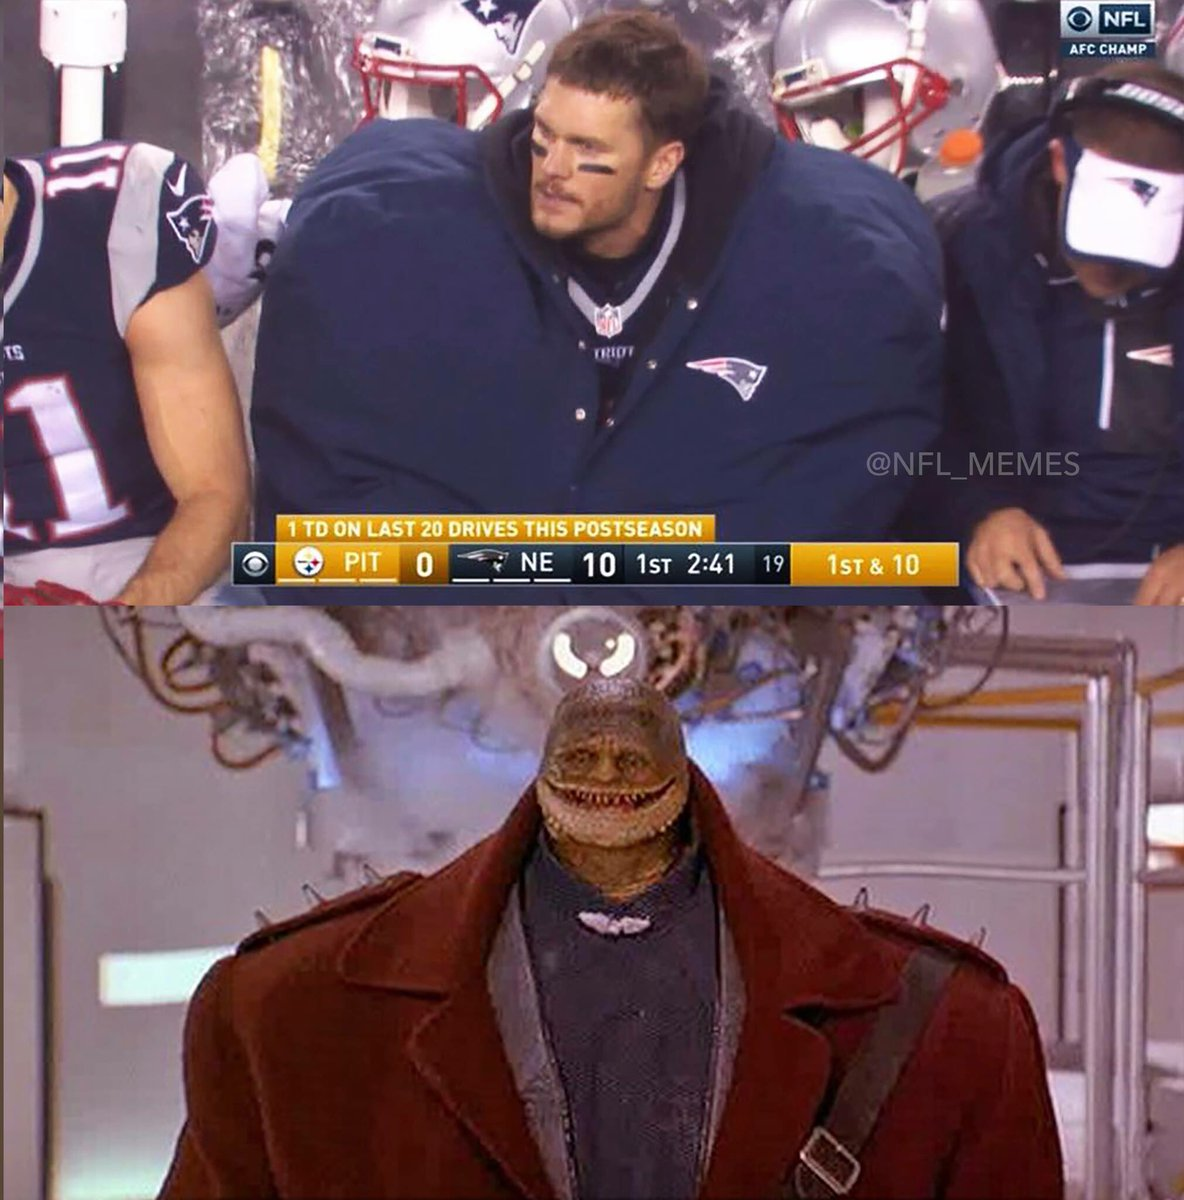 Nfl Memes On Twitter Tom Brady Out Here Looking Like Goomba From The Super Mario Bros Movie